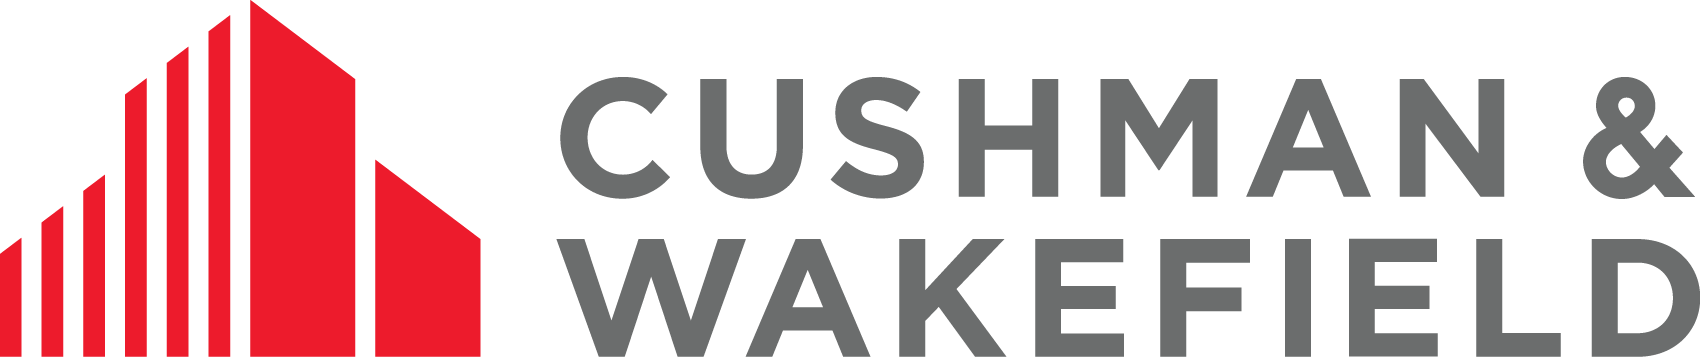 cushman wake (final).png